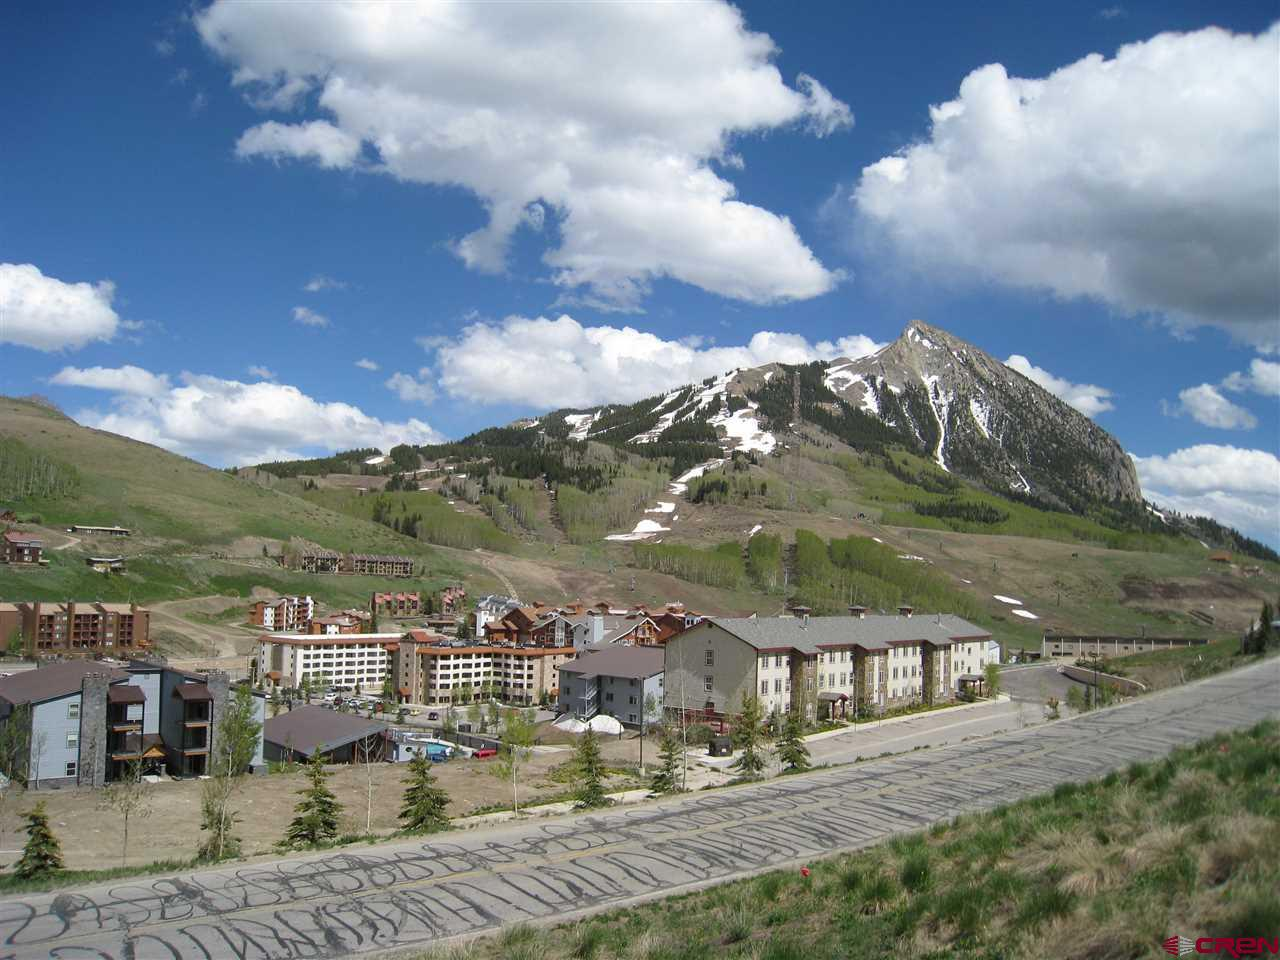 MLS# 757036 - 7 - 17 Marcellina Lane, Mt. Crested Butte, CO 81225